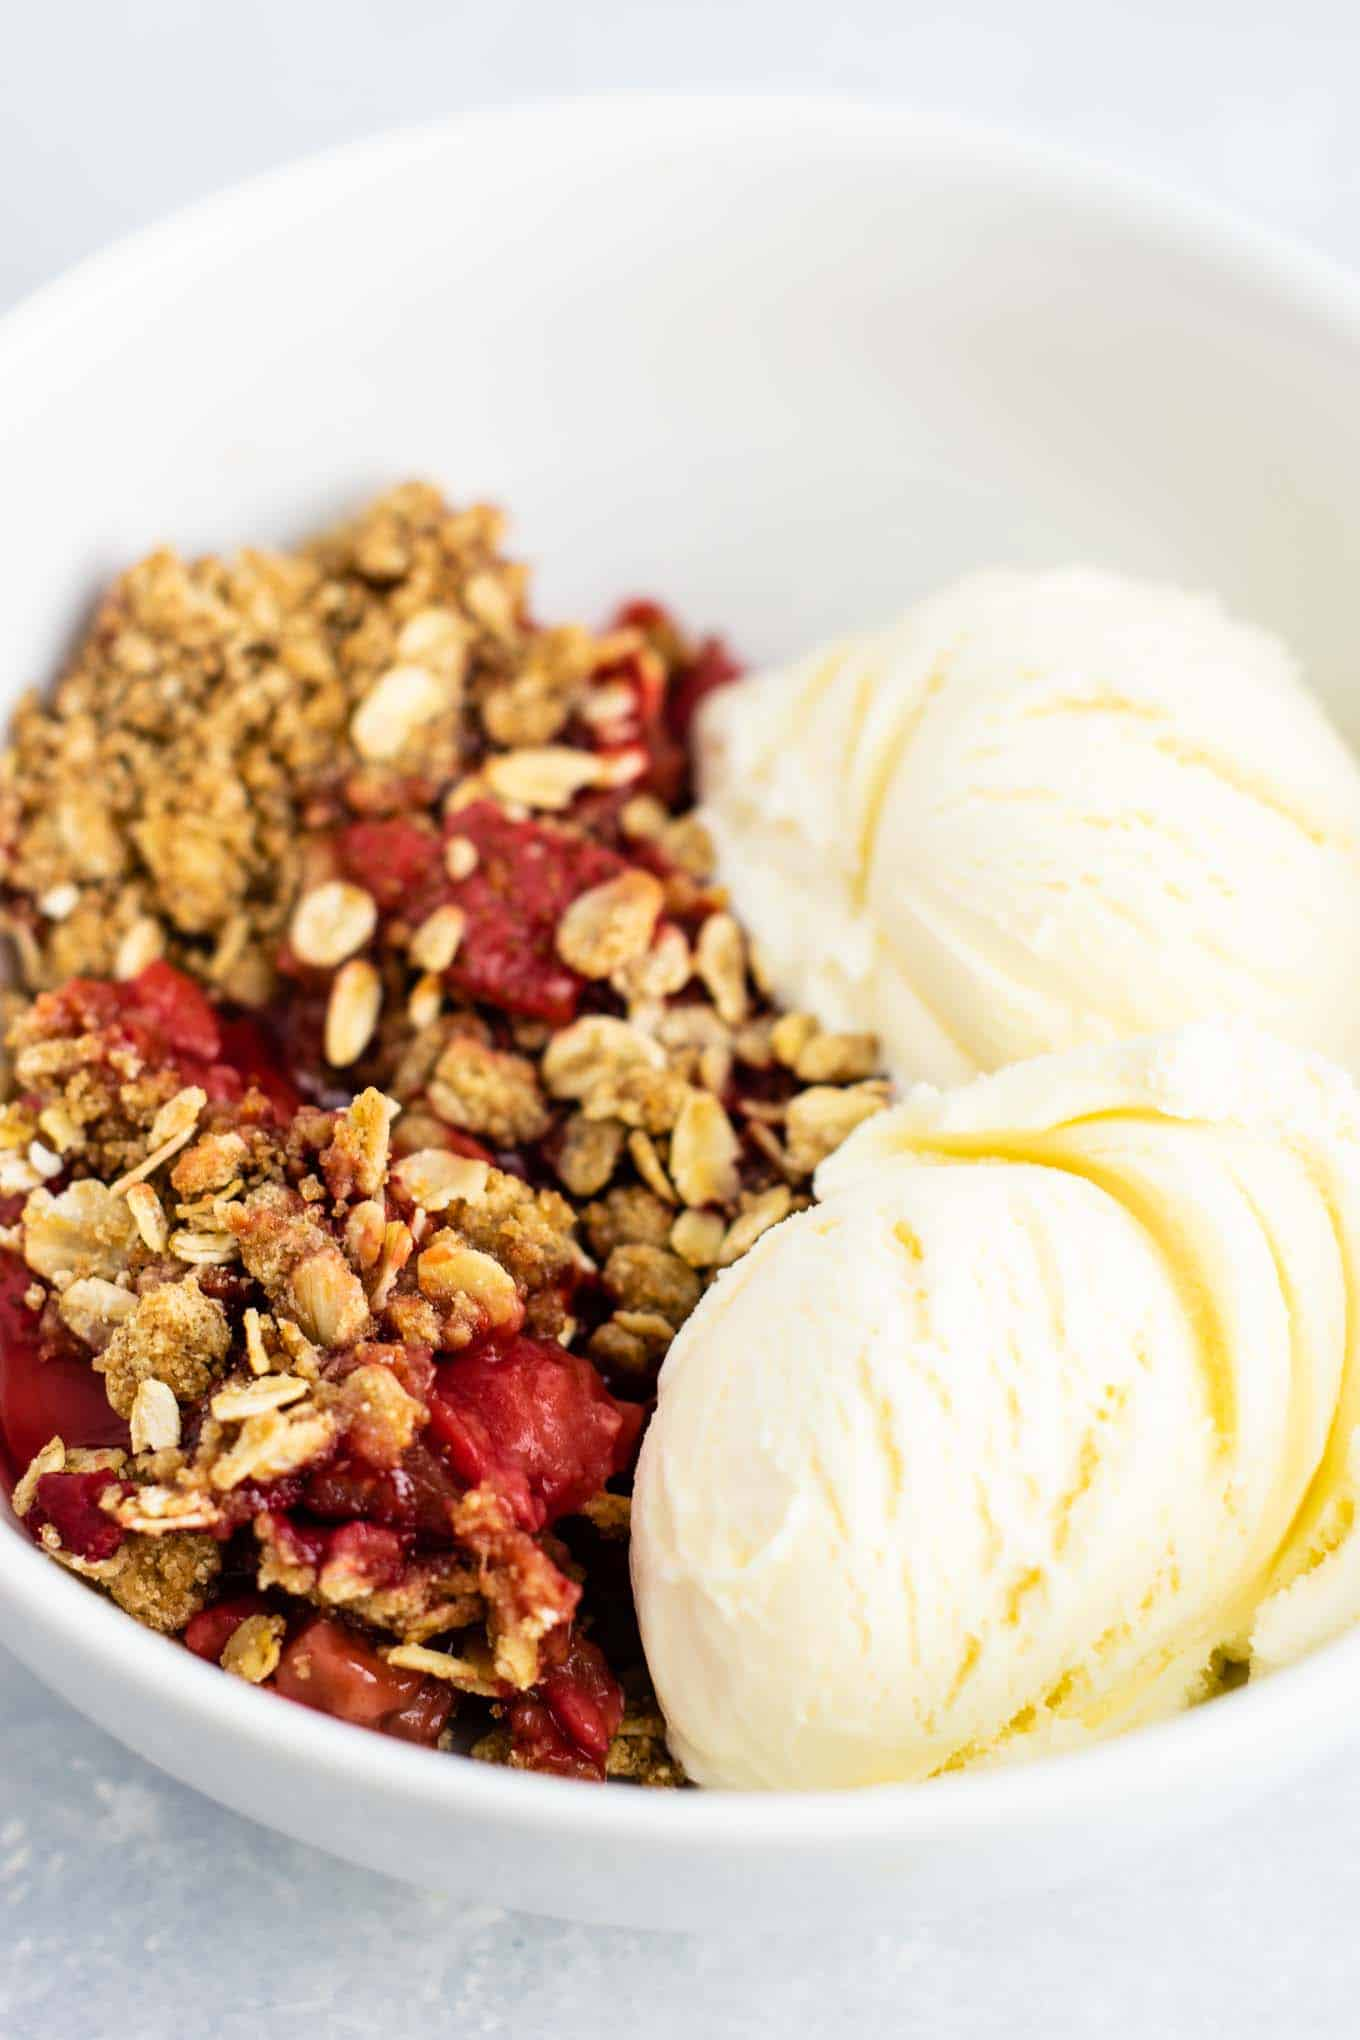 Easy strawberry crisp recipe (gluten free + vegan) – perfect for using up fresh strawberries! #strawberrycrisp #dessert #glutenfree #vegan #healthydessert #dairyfree